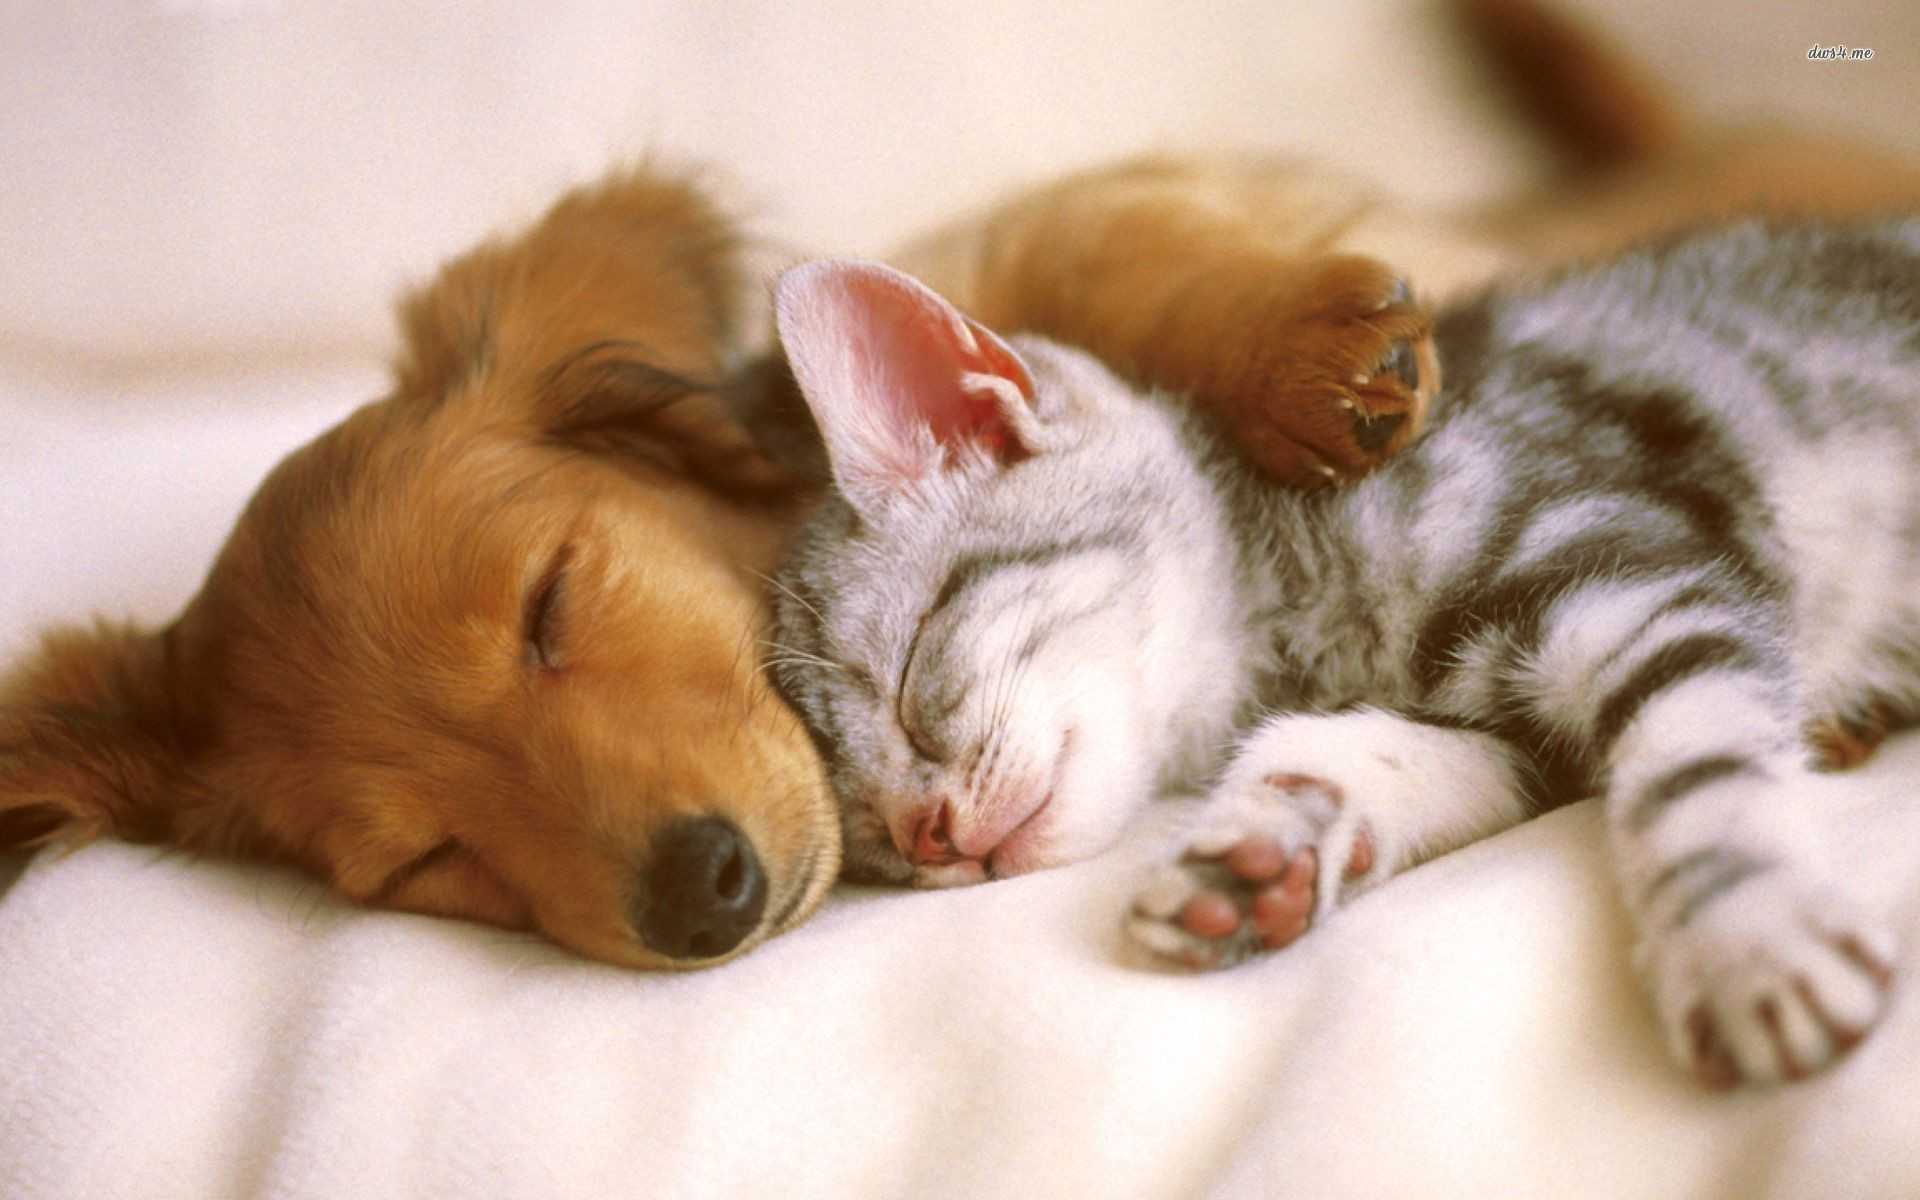 1920x1200 - Cute Puppy and Kitten 34